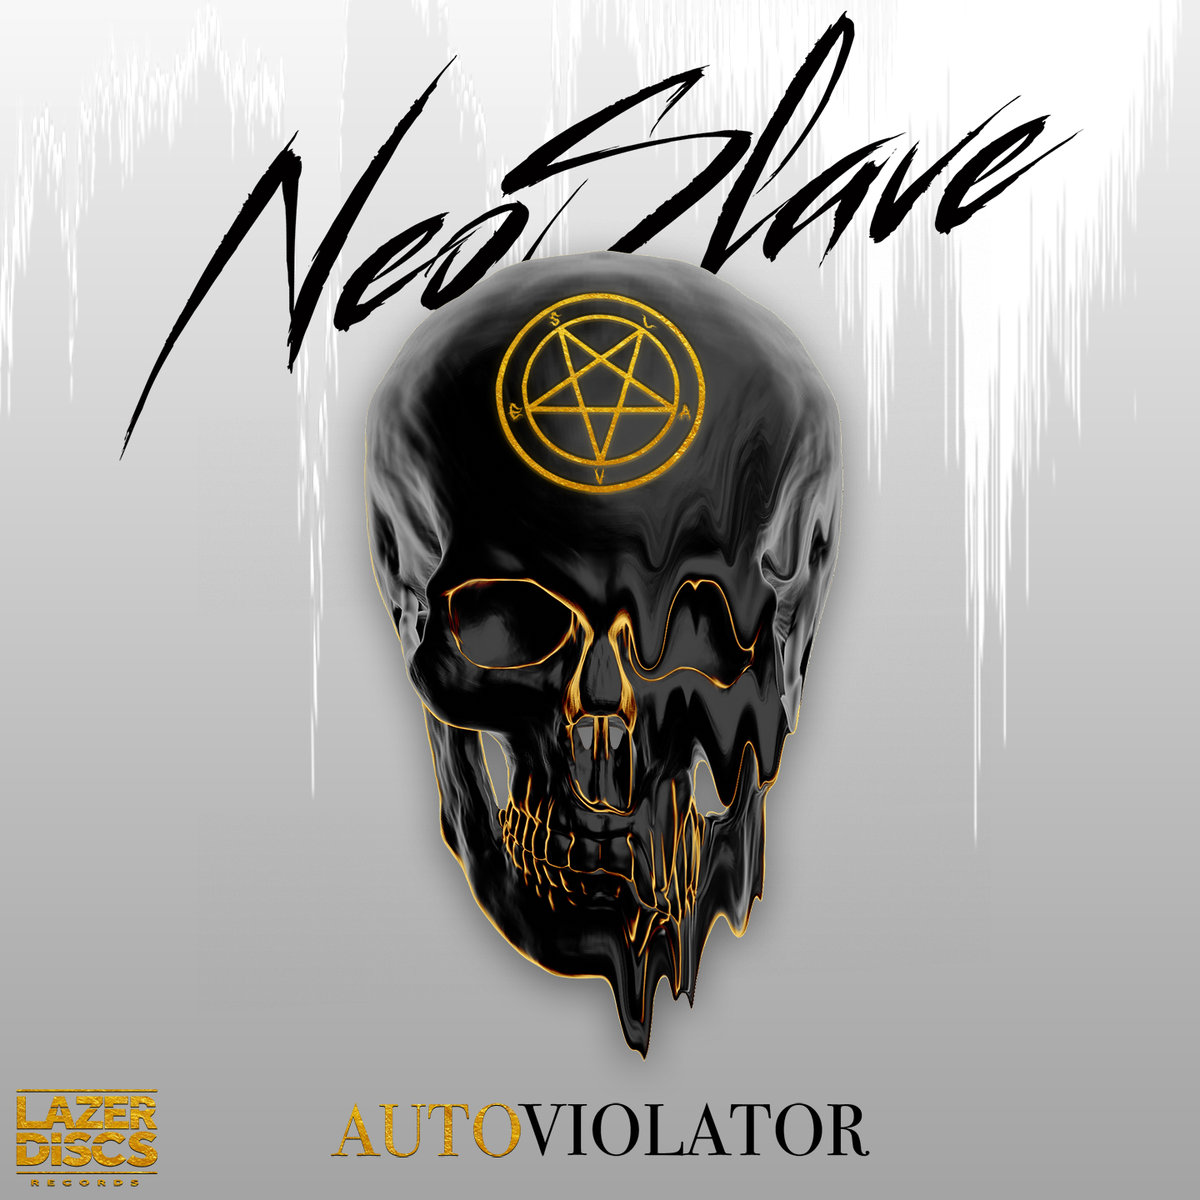 a2585167351 10 - Neoslave's Autoviolator is Here to Desecrate Your Ears!